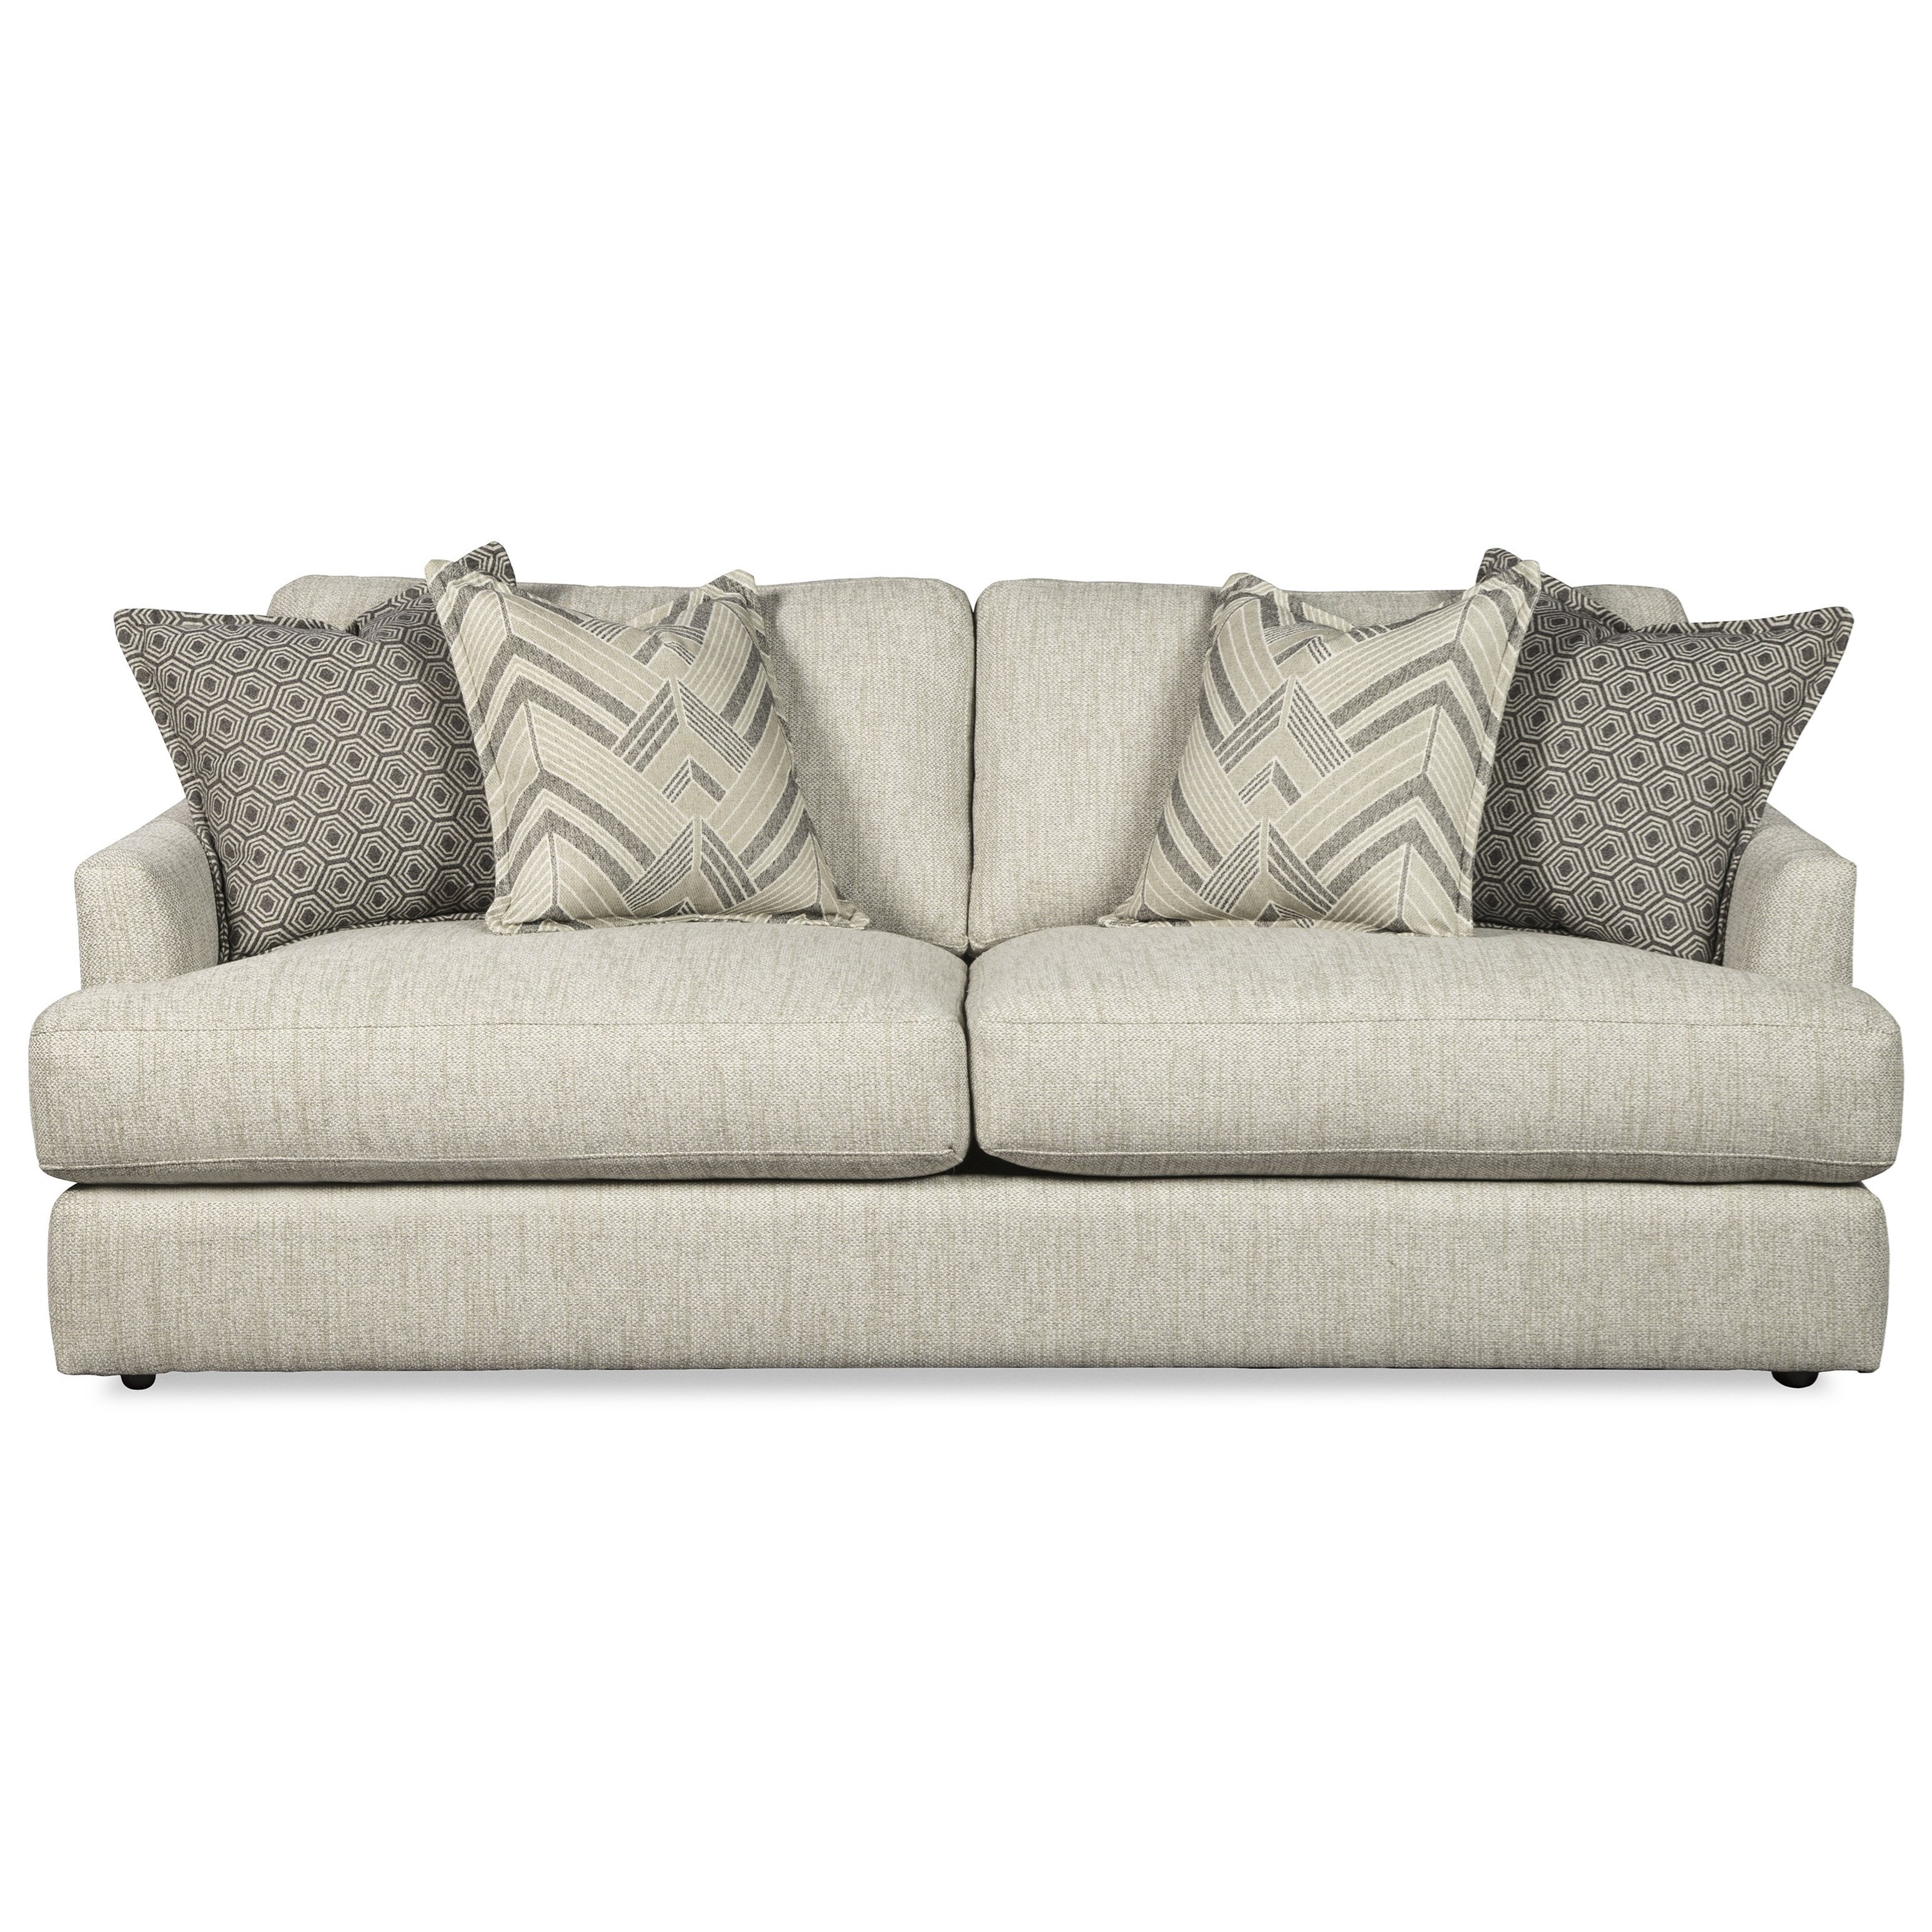 700150BD Sofa by Craftmaster at Home Collections Furniture